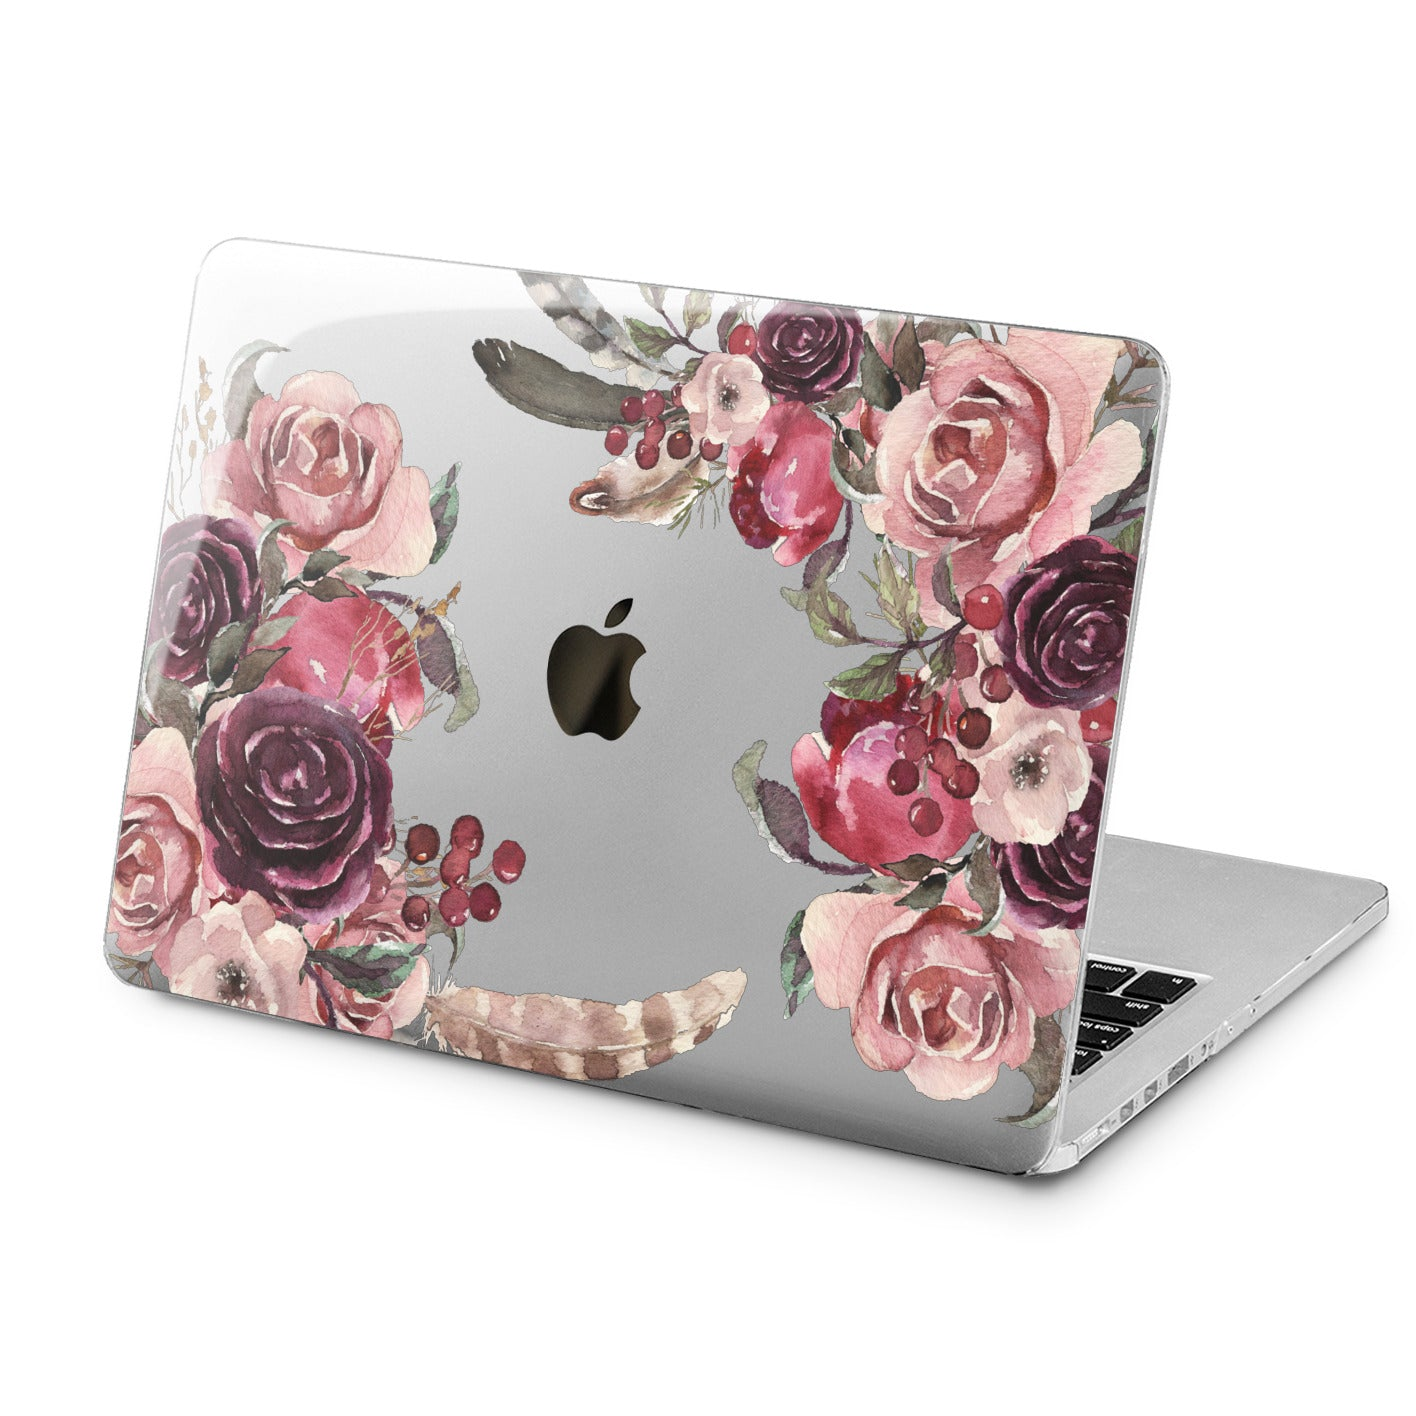 Lex Altern Lex Altern Purple Roses Case for your Laptop Apple Macbook.